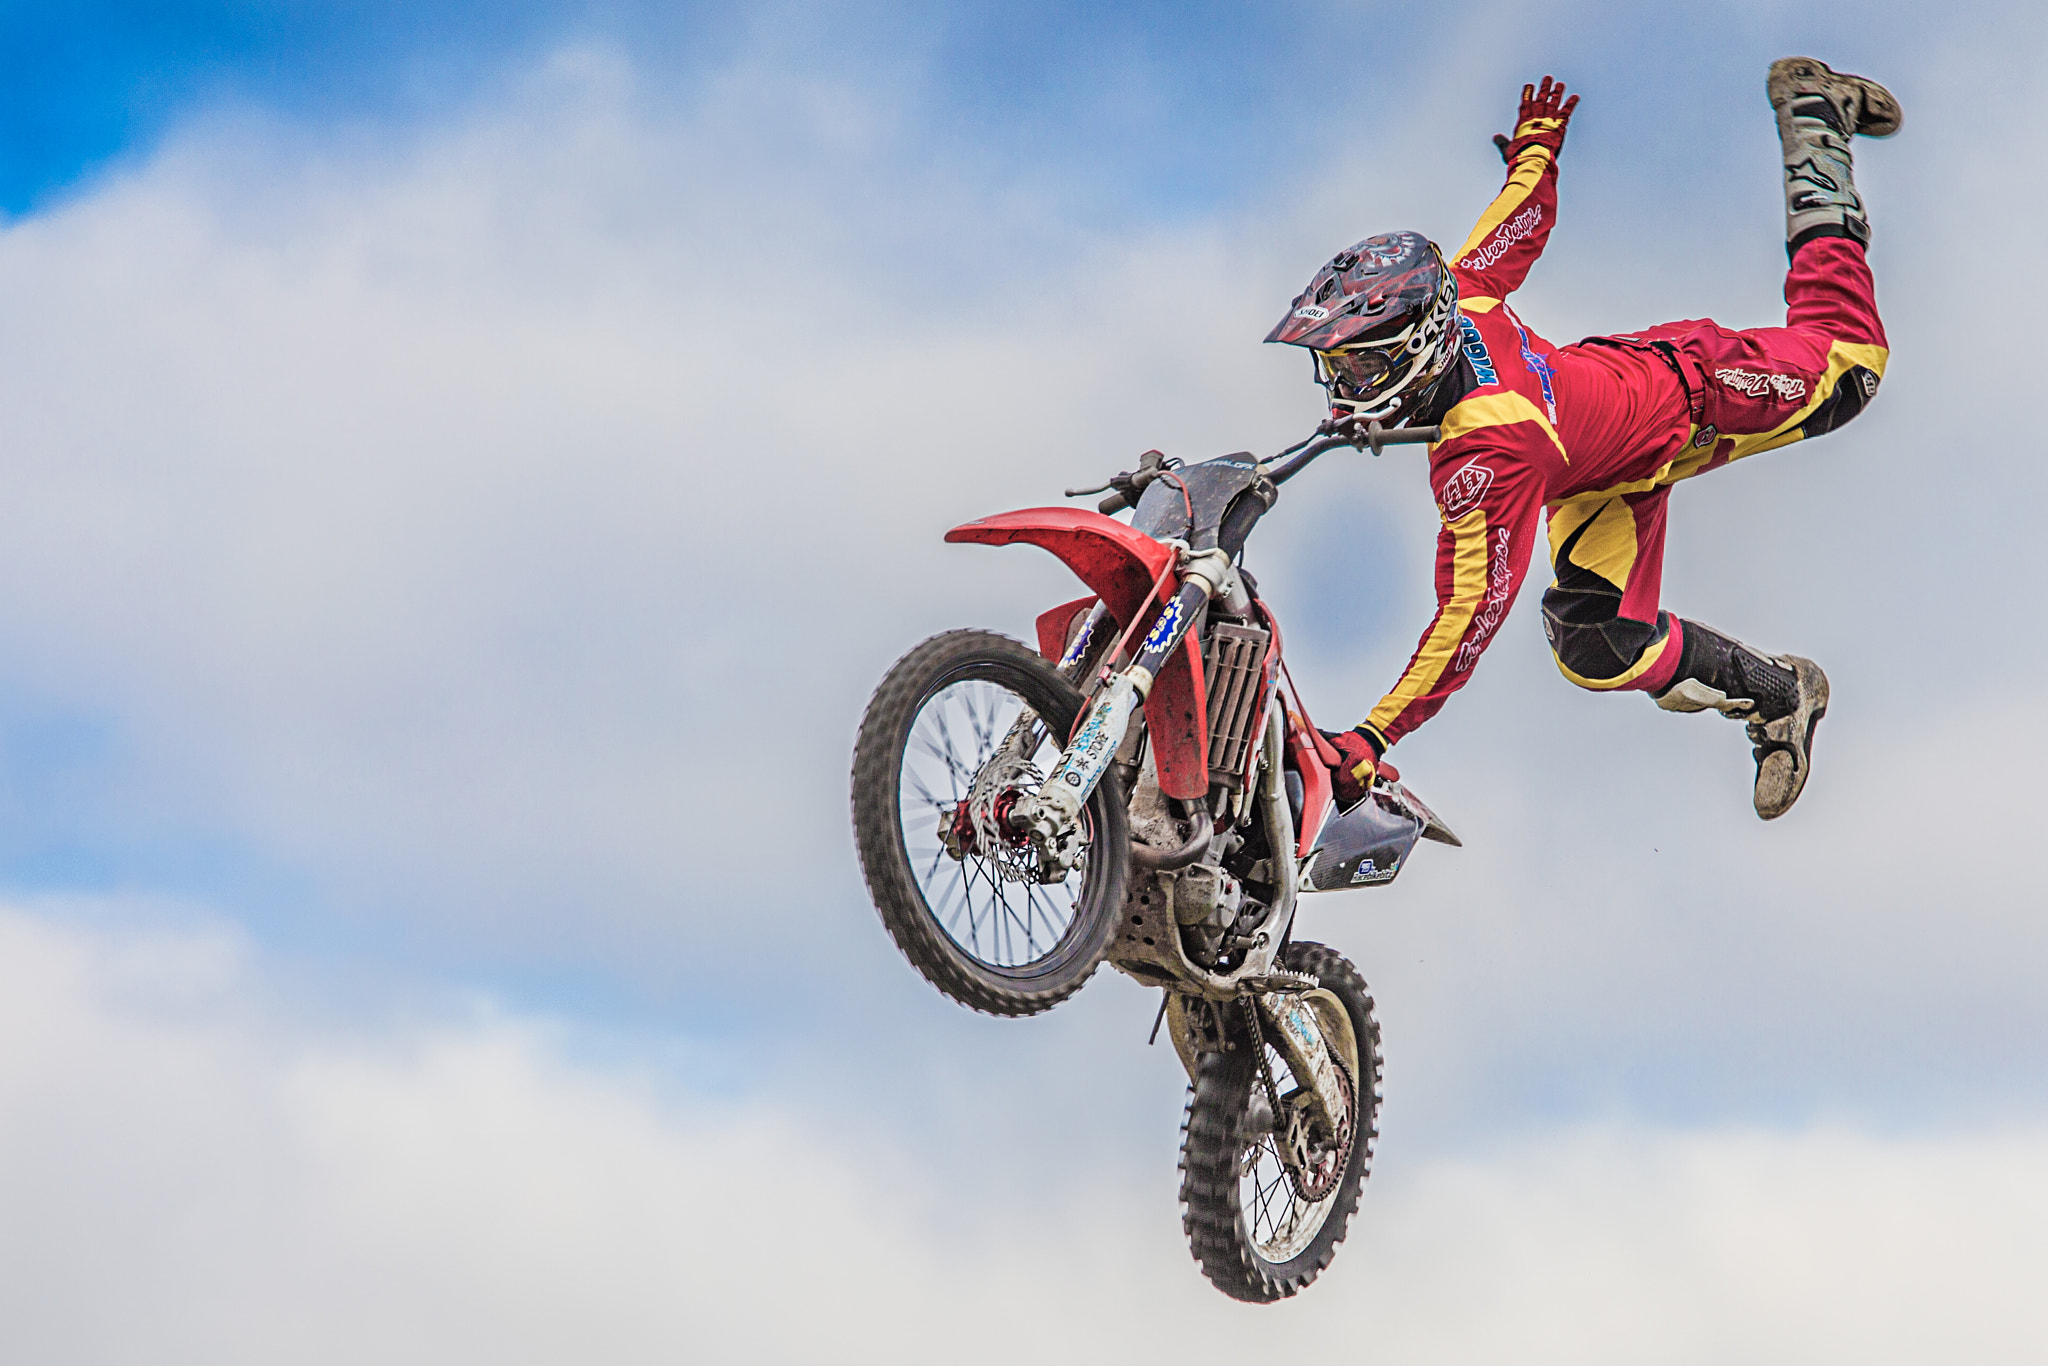 Photograph High Flyer by Tony Antoniou on 500px